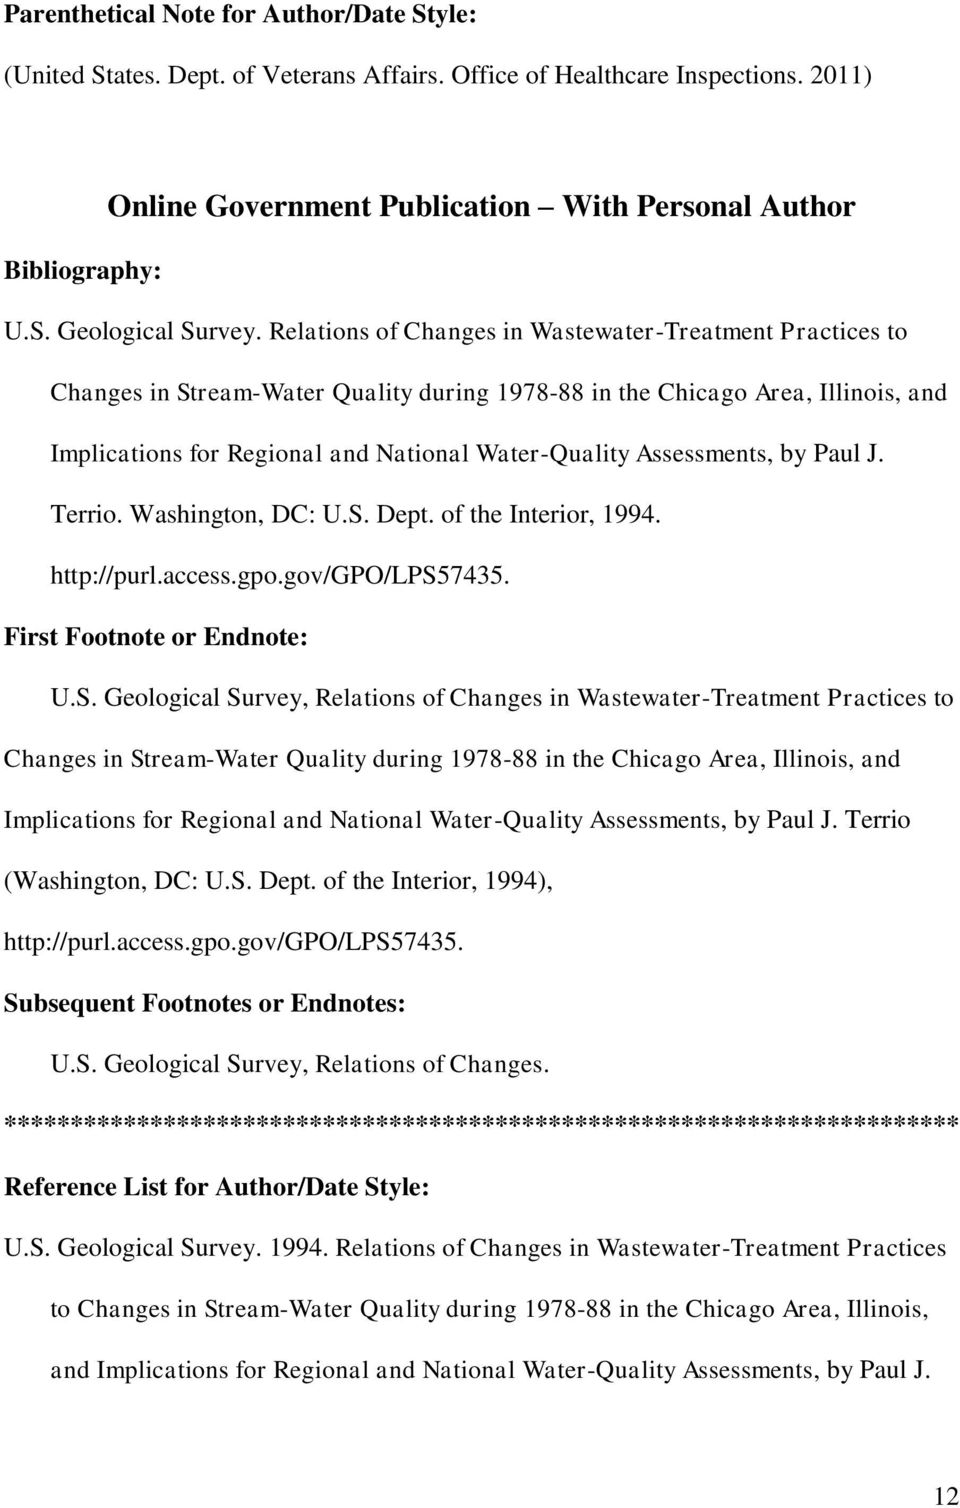 Assessments, by Paul J. Terrio. Washington, DC: U.S. Dept. of the Interior, 1994. http://purl.access.gpo.gov/gpo/lps57435. U.S. Geological Survey,  Assessments, by Paul J. Terrio (Washington, DC: U.S. Dept. of the Interior, 1994), http://purl.